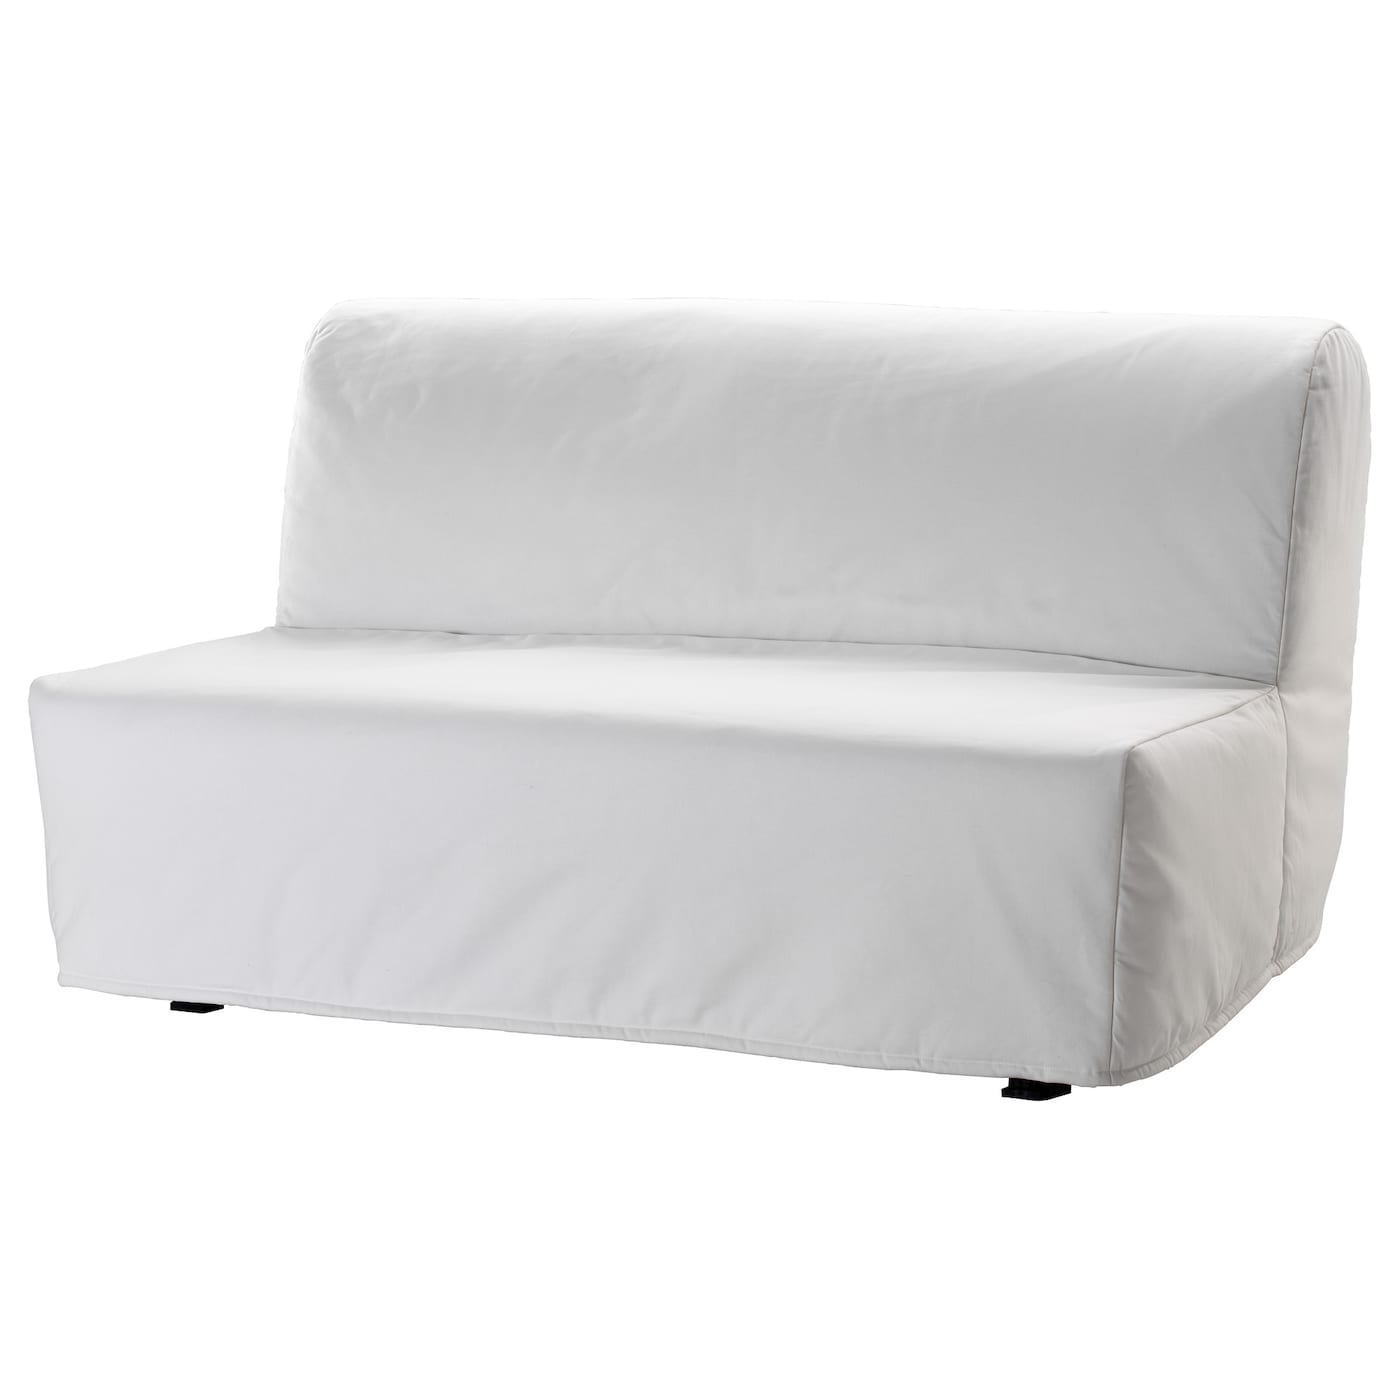 lycksele h vet two seat sofa bed ransta white ikea. Black Bedroom Furniture Sets. Home Design Ideas